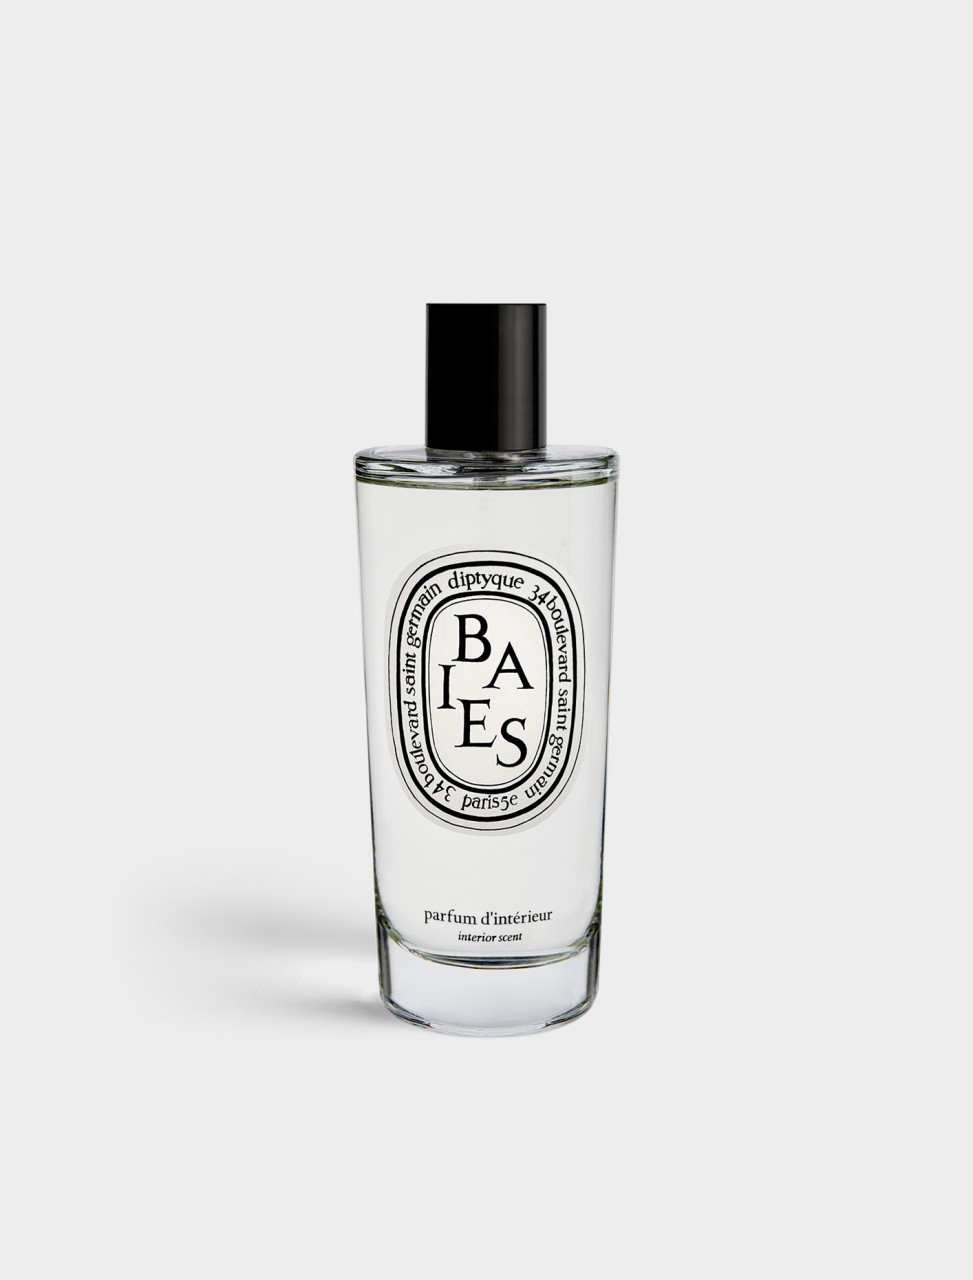 337-VBV1 DIPTYQUE BAIES ROOM SPRAY